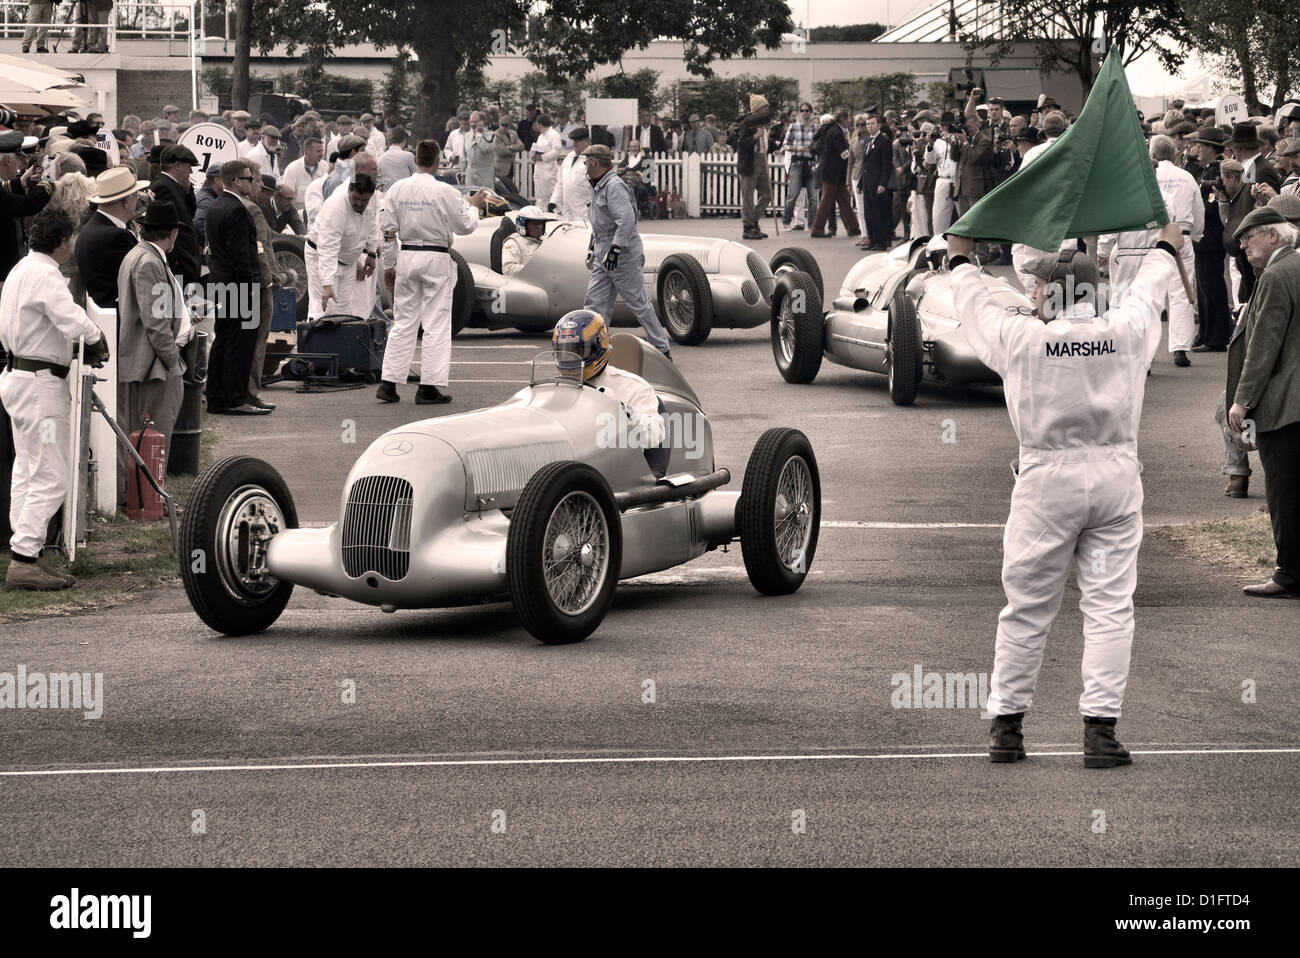 Silver Arrows demonstration run at Goodwood revival race meeting. GP cars leave holding area. - Stock Image